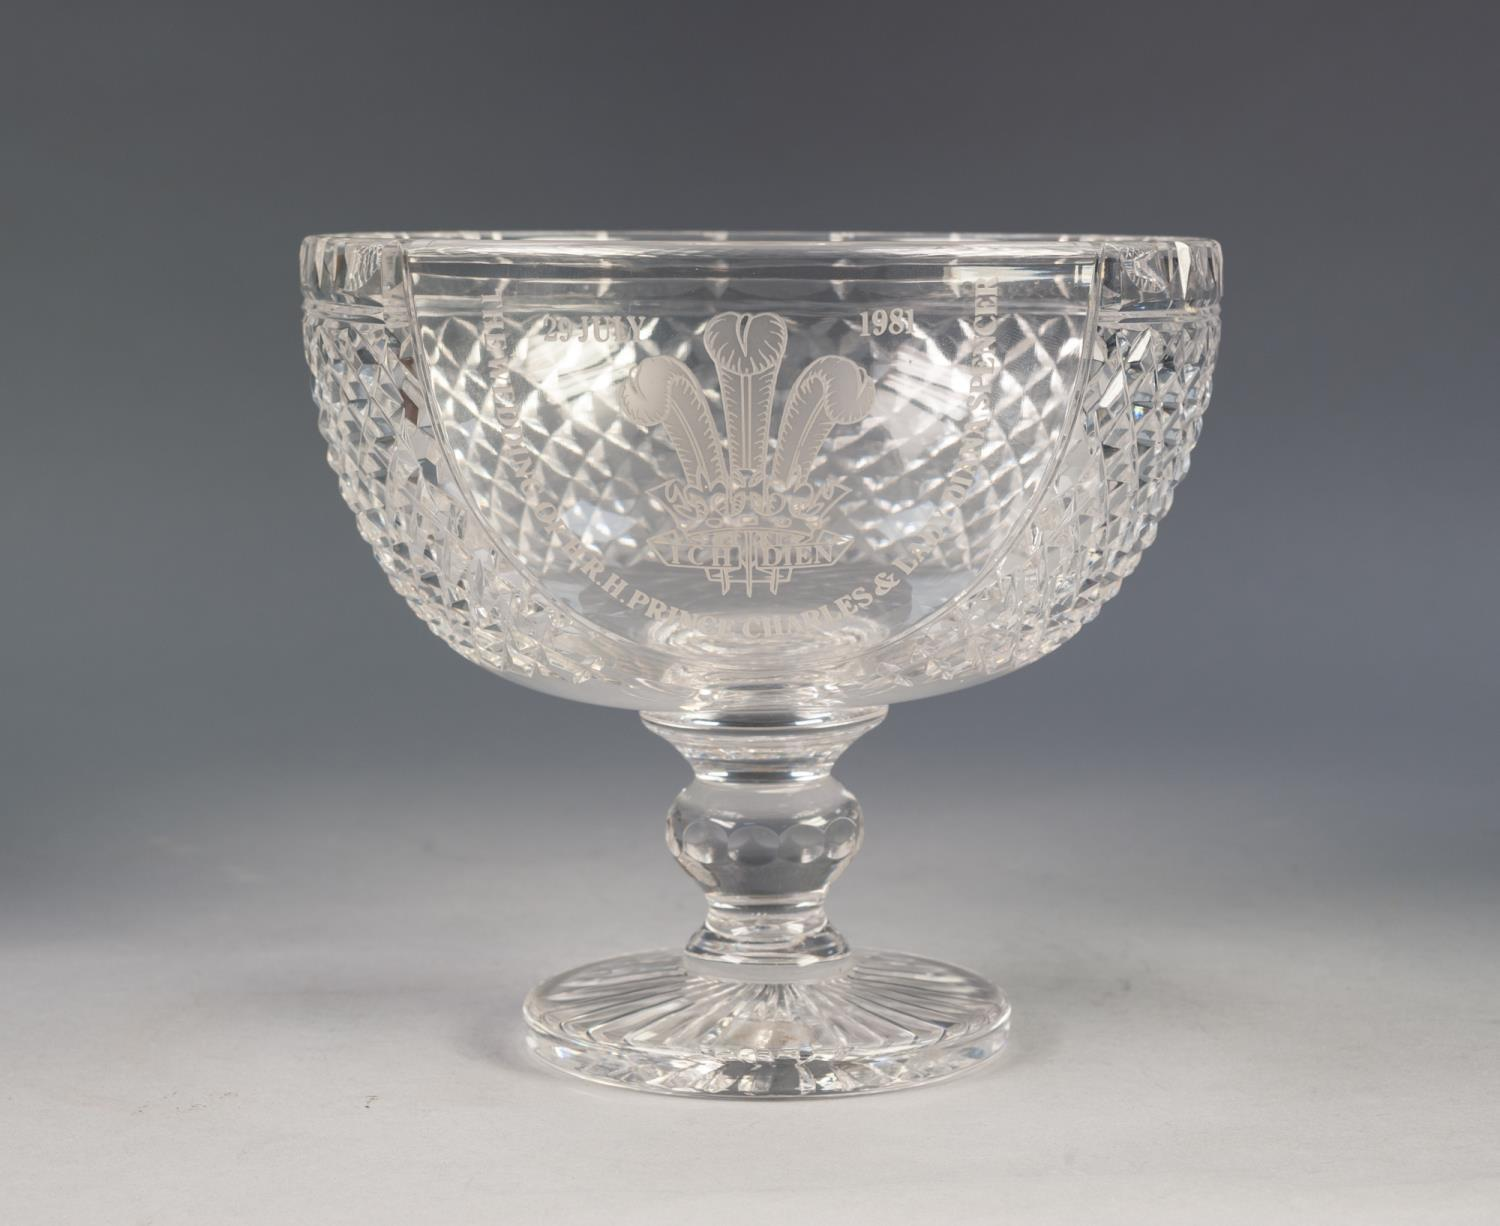 Lot 204 - BOXED STUART CRYSTAL LIMITED EDITION, CHARLES AND DIANA, ROYAL COMMEMORATIVE CHALICE, engraved